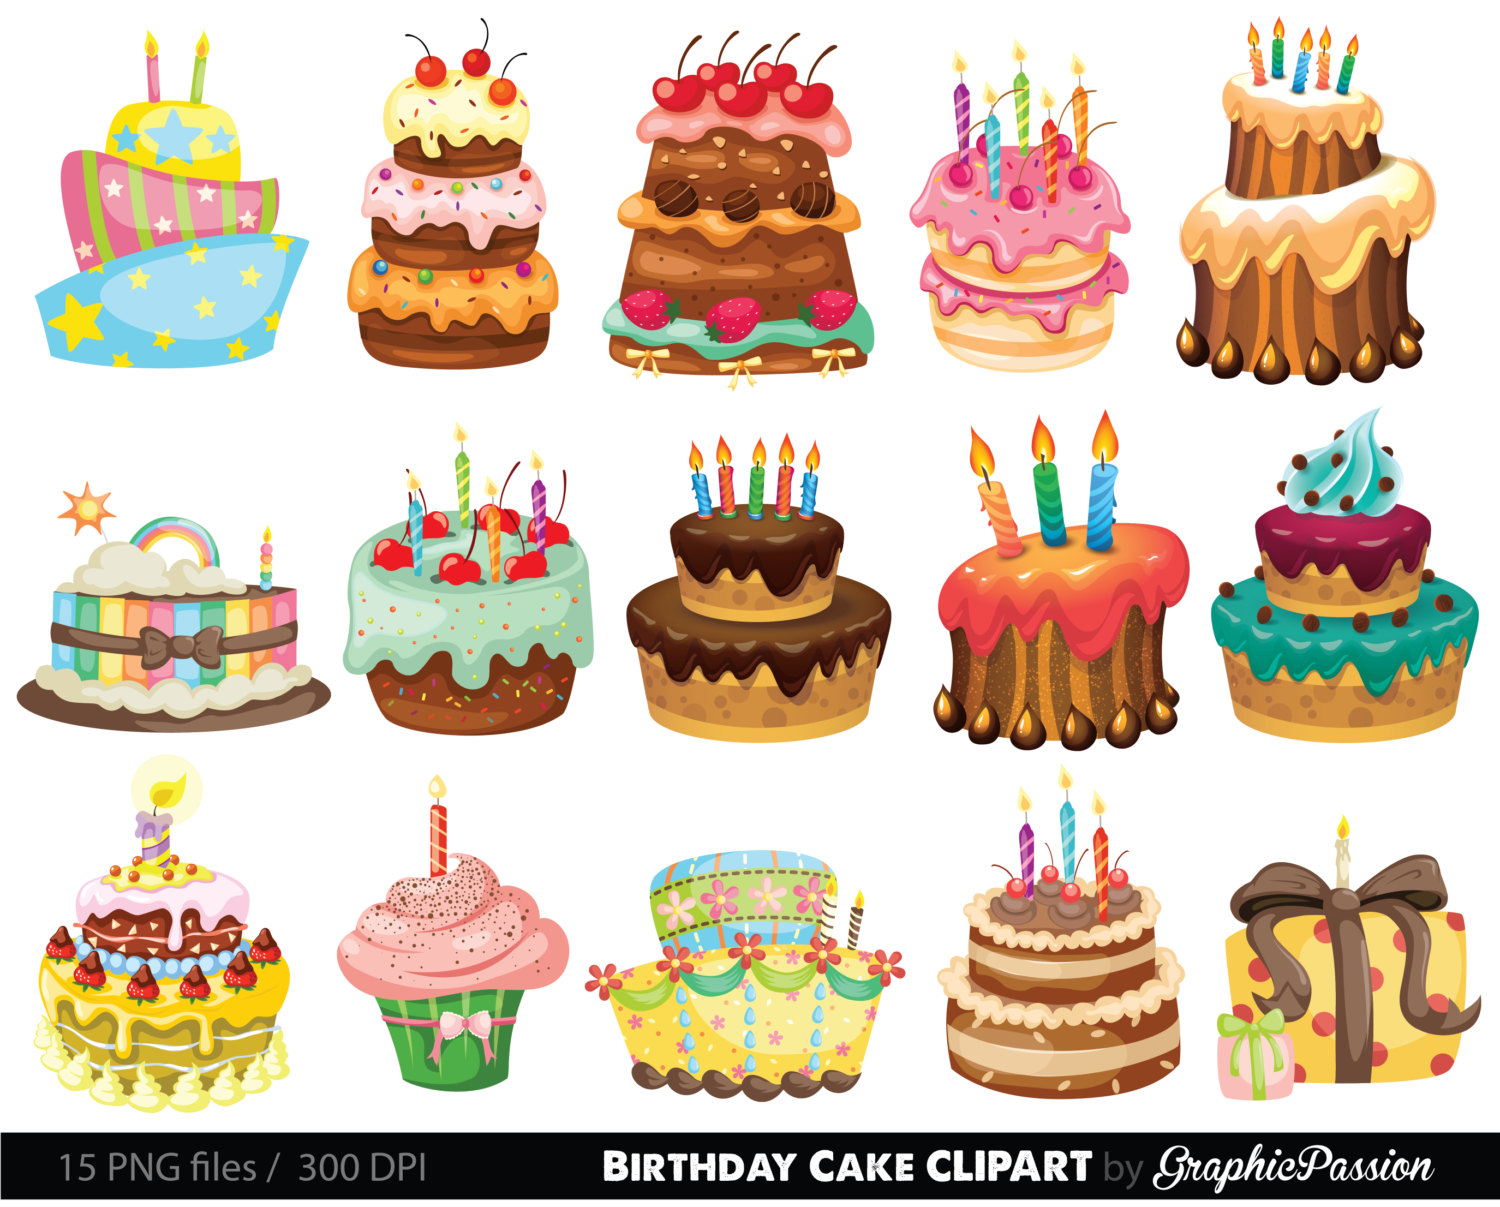 Birthday cake hat clipart image transparent stock Birthday Cake Clipart. Cake Illustration. Birthday Cake image transparent stock